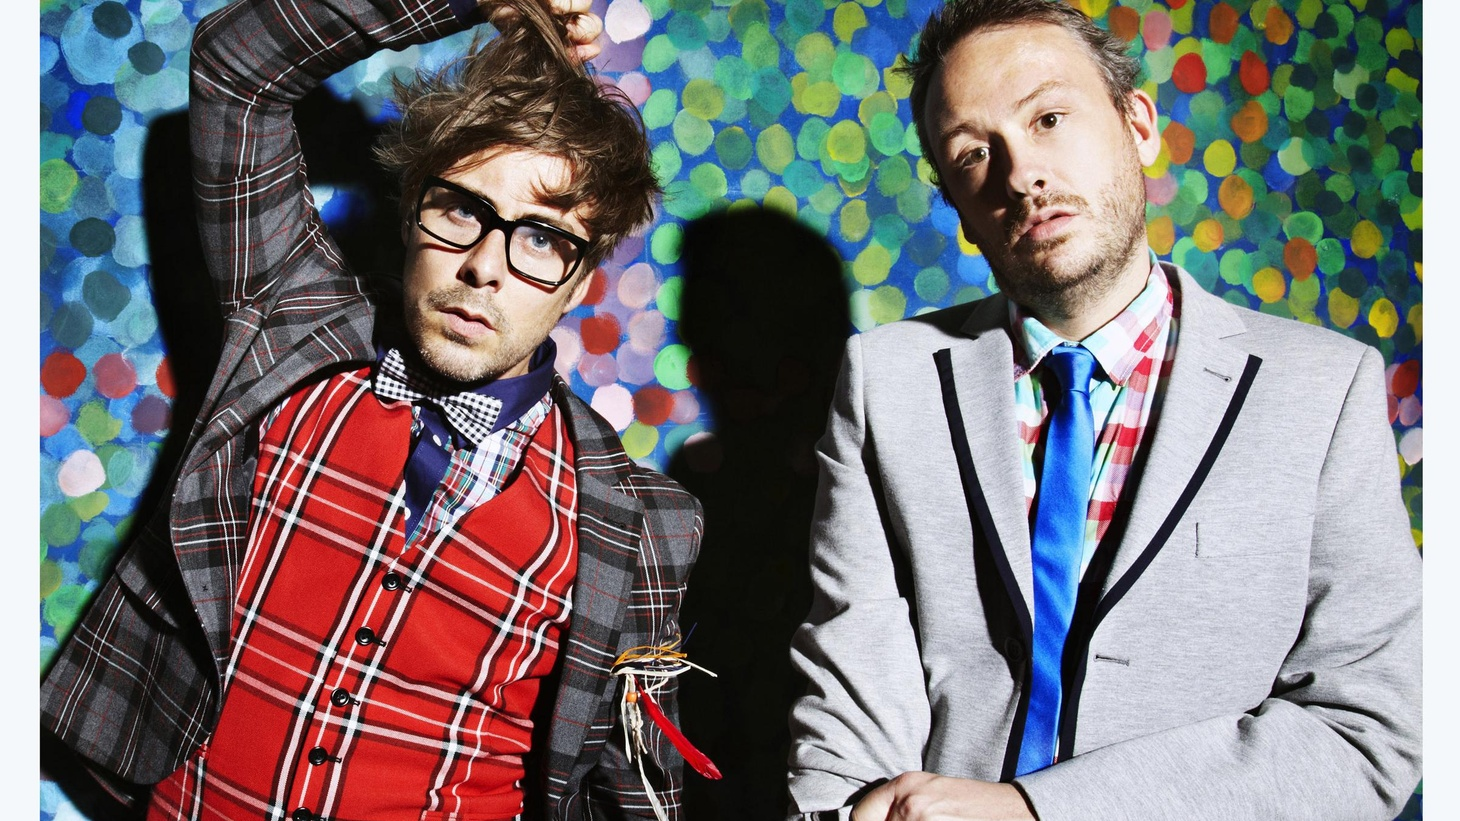 Basement Jaxx have been creating progressive house music since the mid-90's and their new record, Scars is a KCRW favorite. Each track provides a new guest appearance